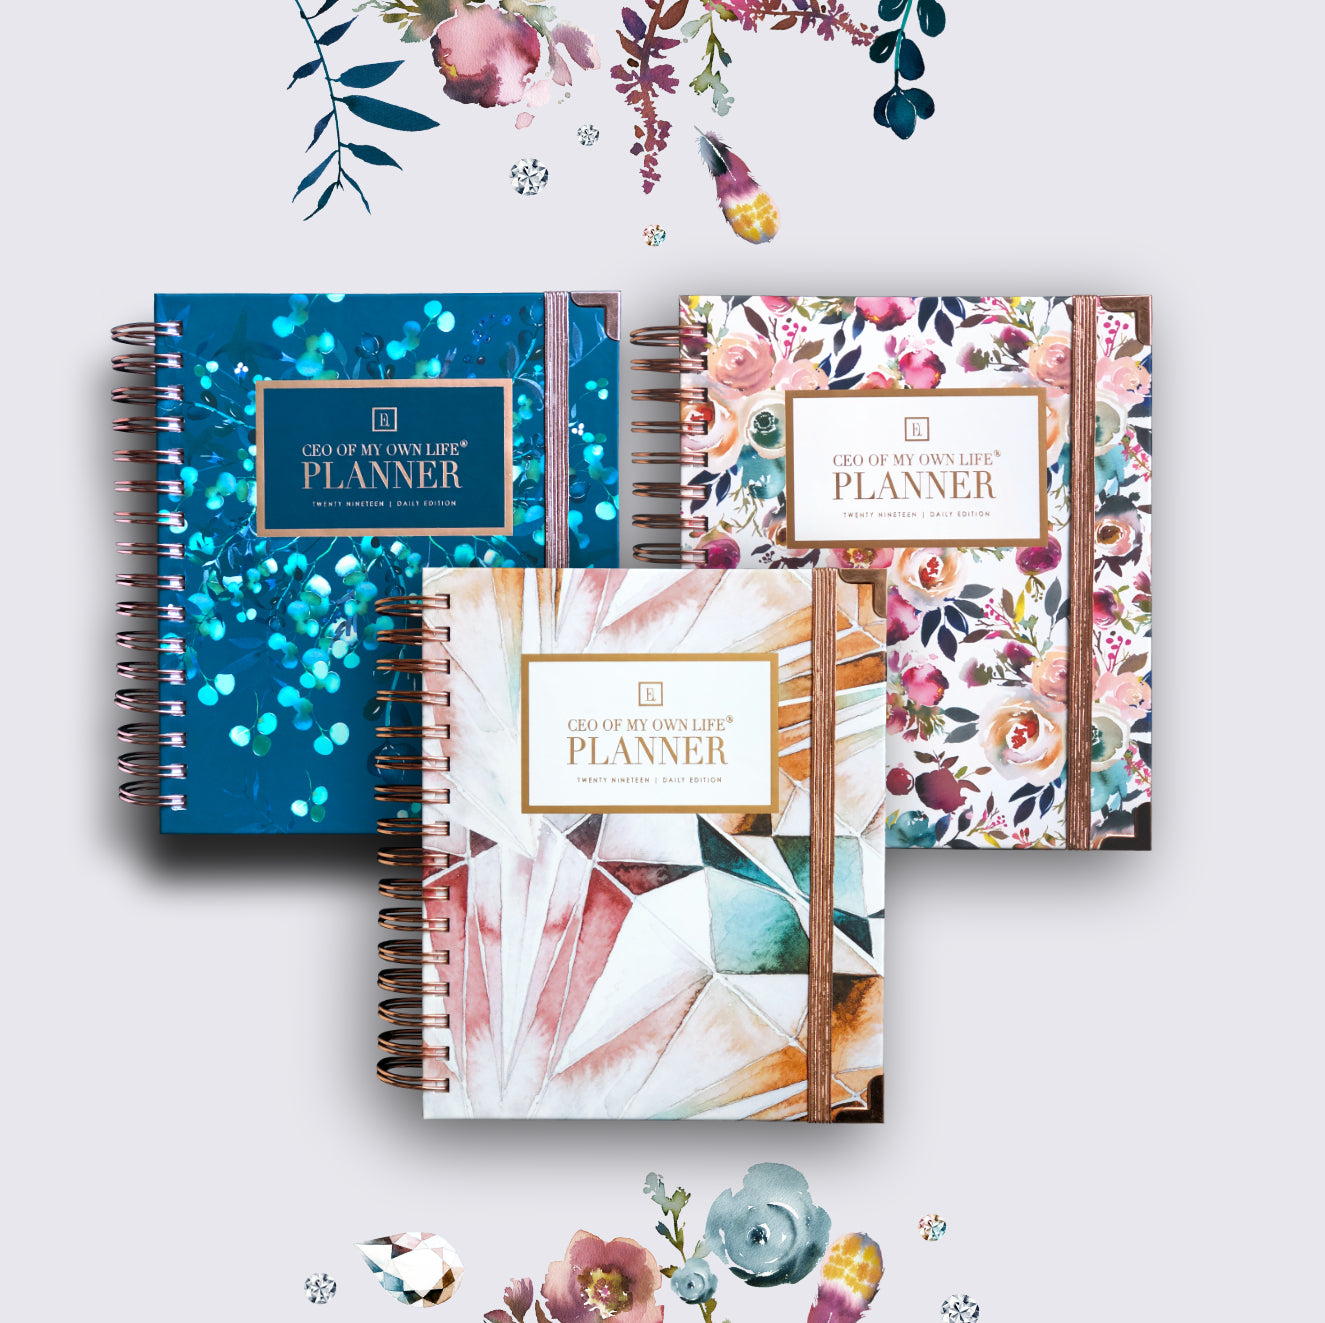 2019 Daily | CEO OF MY OWN LIFE® Planner | Two are better than one!